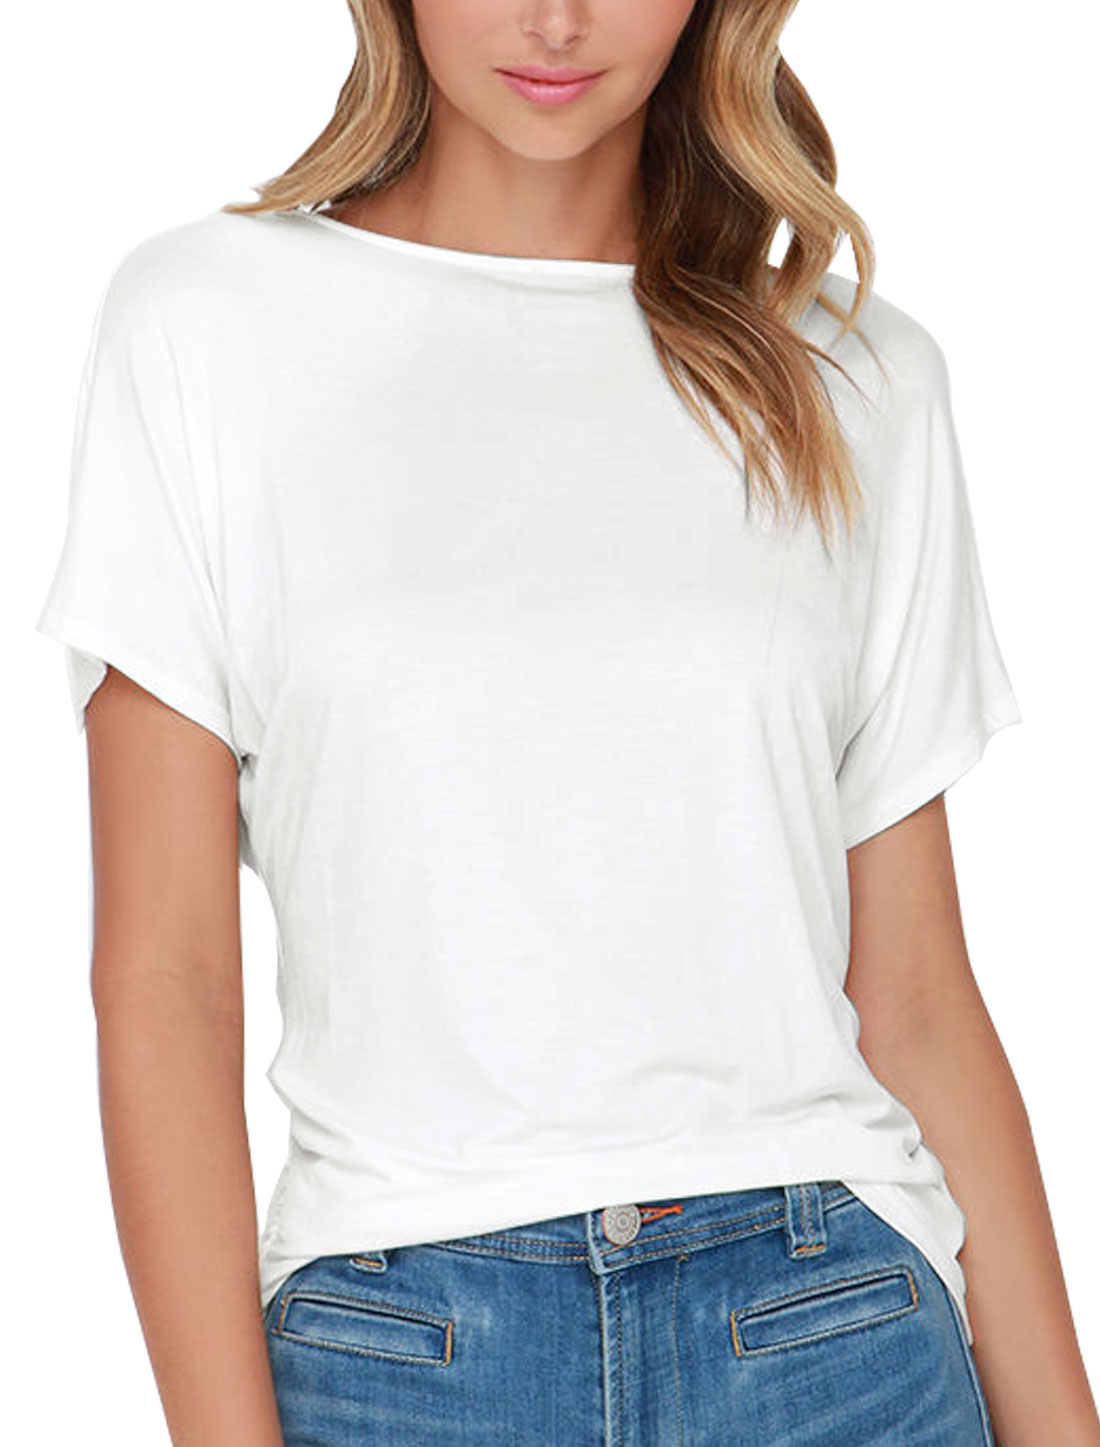 Women Round Neck Crossover V Back Leisure Shirt White M